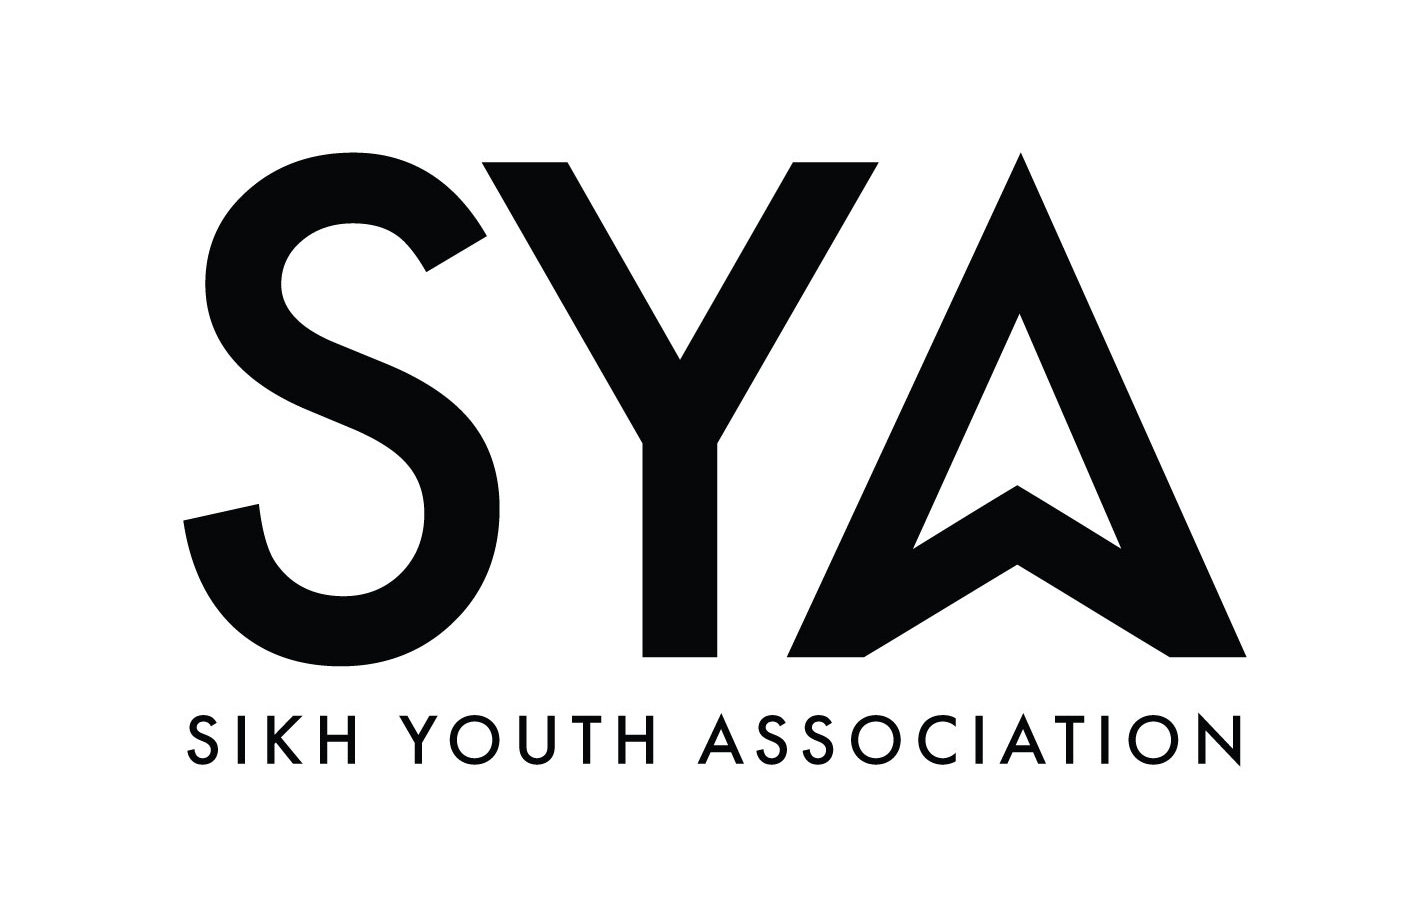 Sikh Youth Association